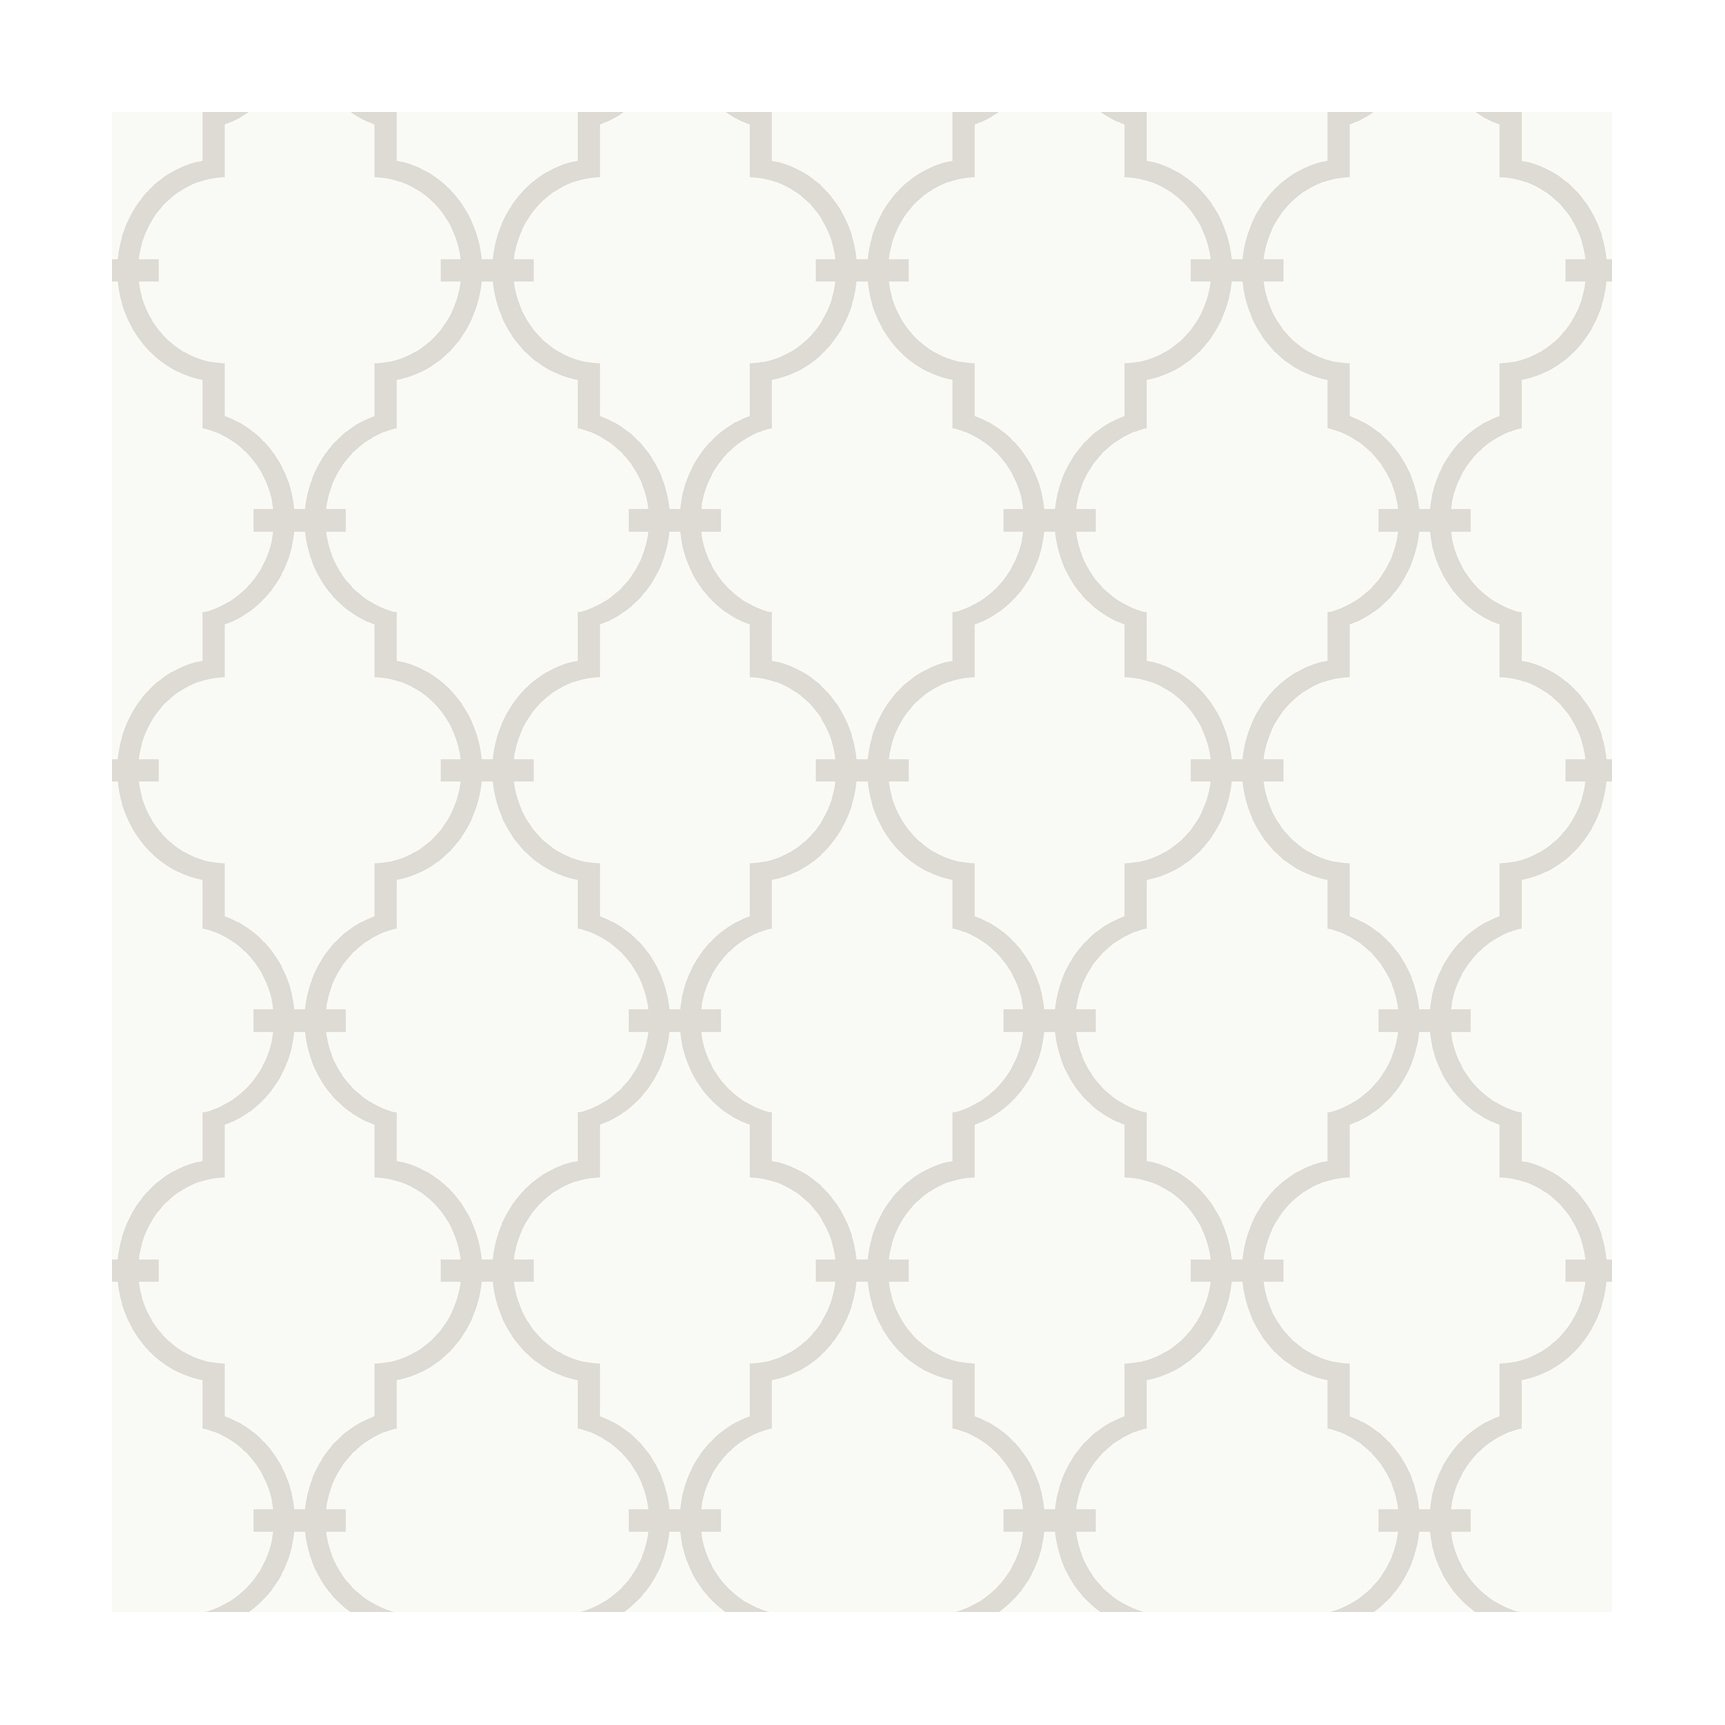 York Wallcoverings YS9102 Peek-A-Boo Graphic Trellis Wallpaper, White/Soft Taupe Grey - Ultra Removable by York Wallcoverings